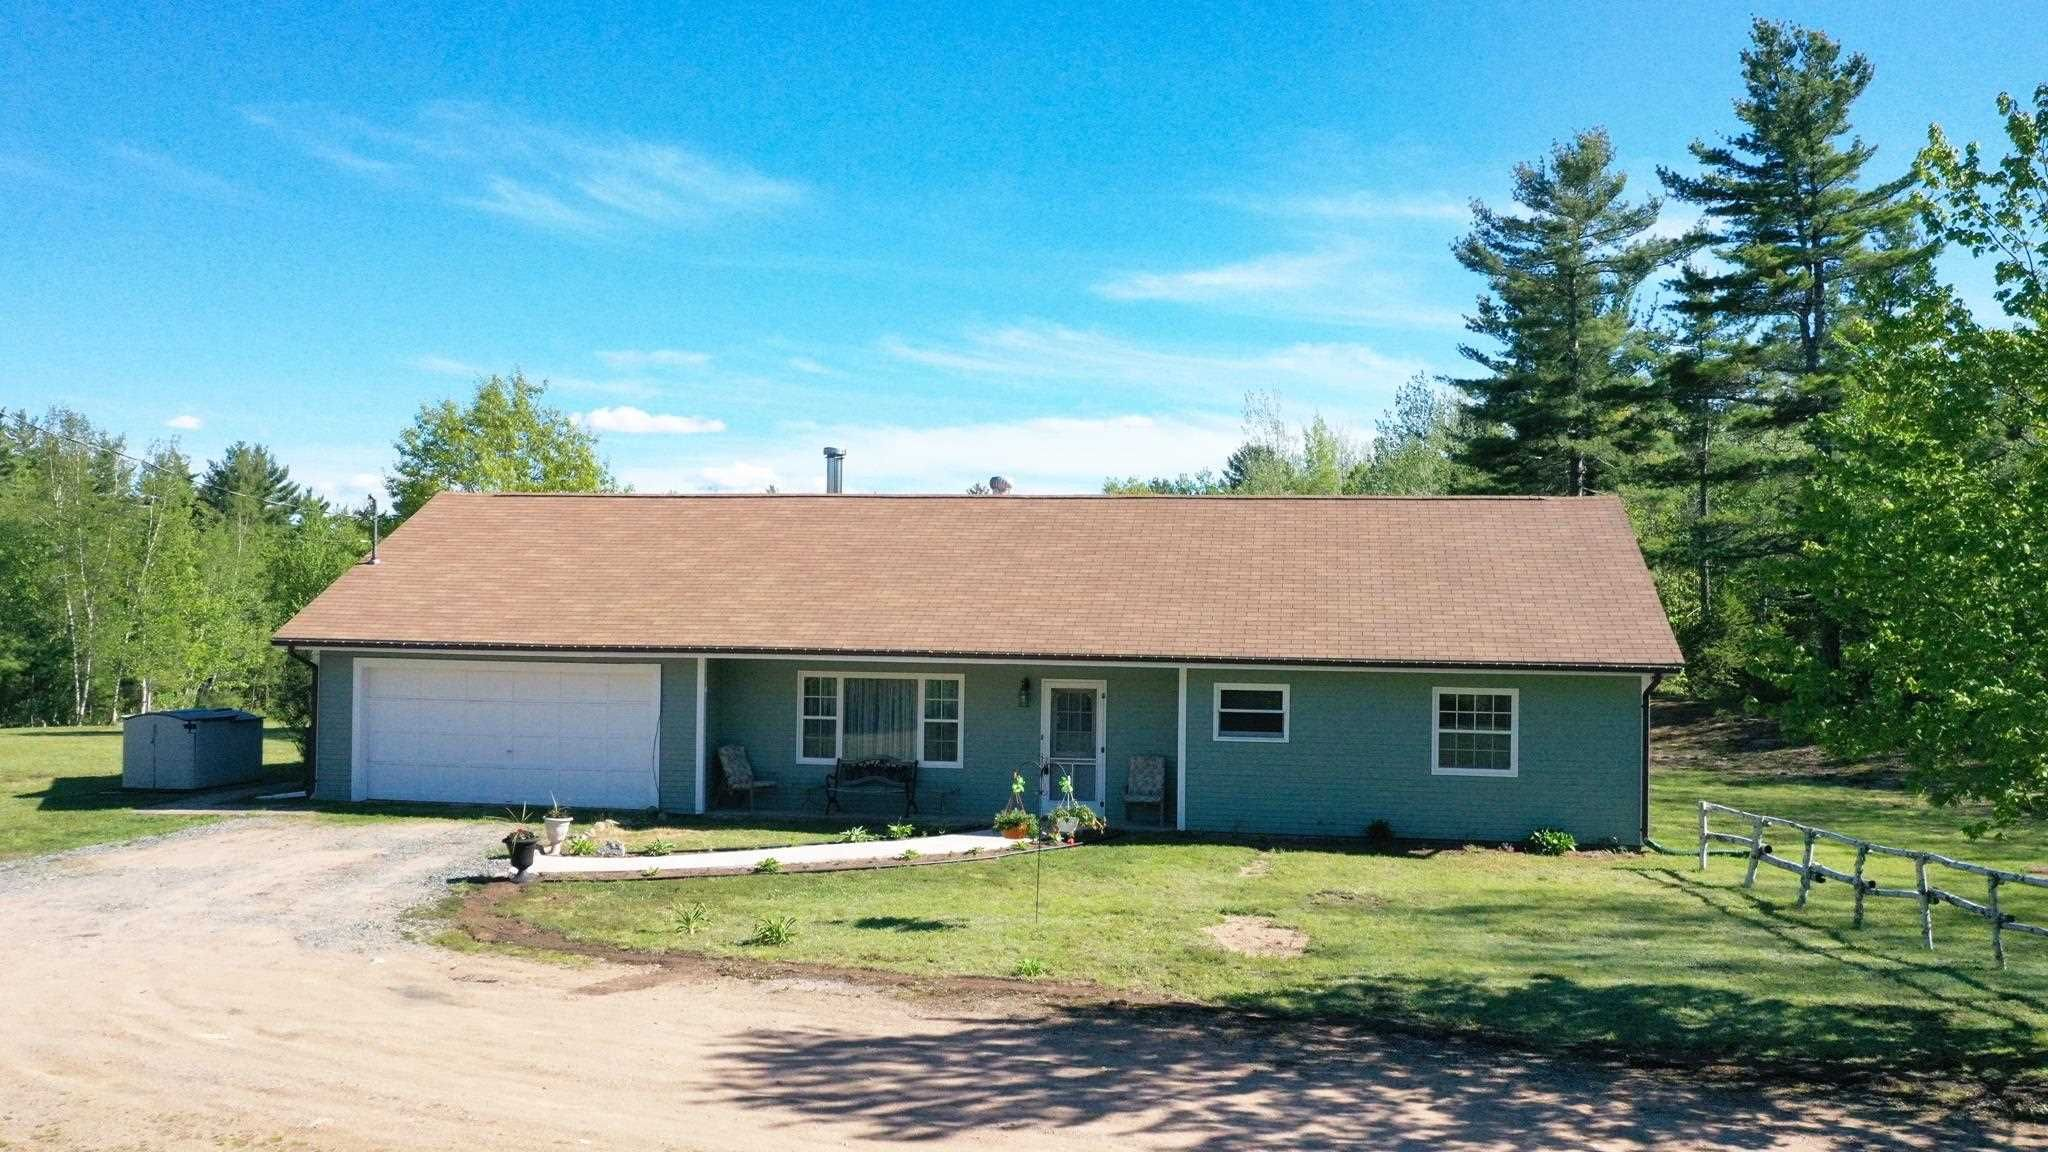 Main Photo: 252 Eves Road in New Albany: 400-Annapolis County Residential for sale (Annapolis Valley)  : MLS®# 202105937